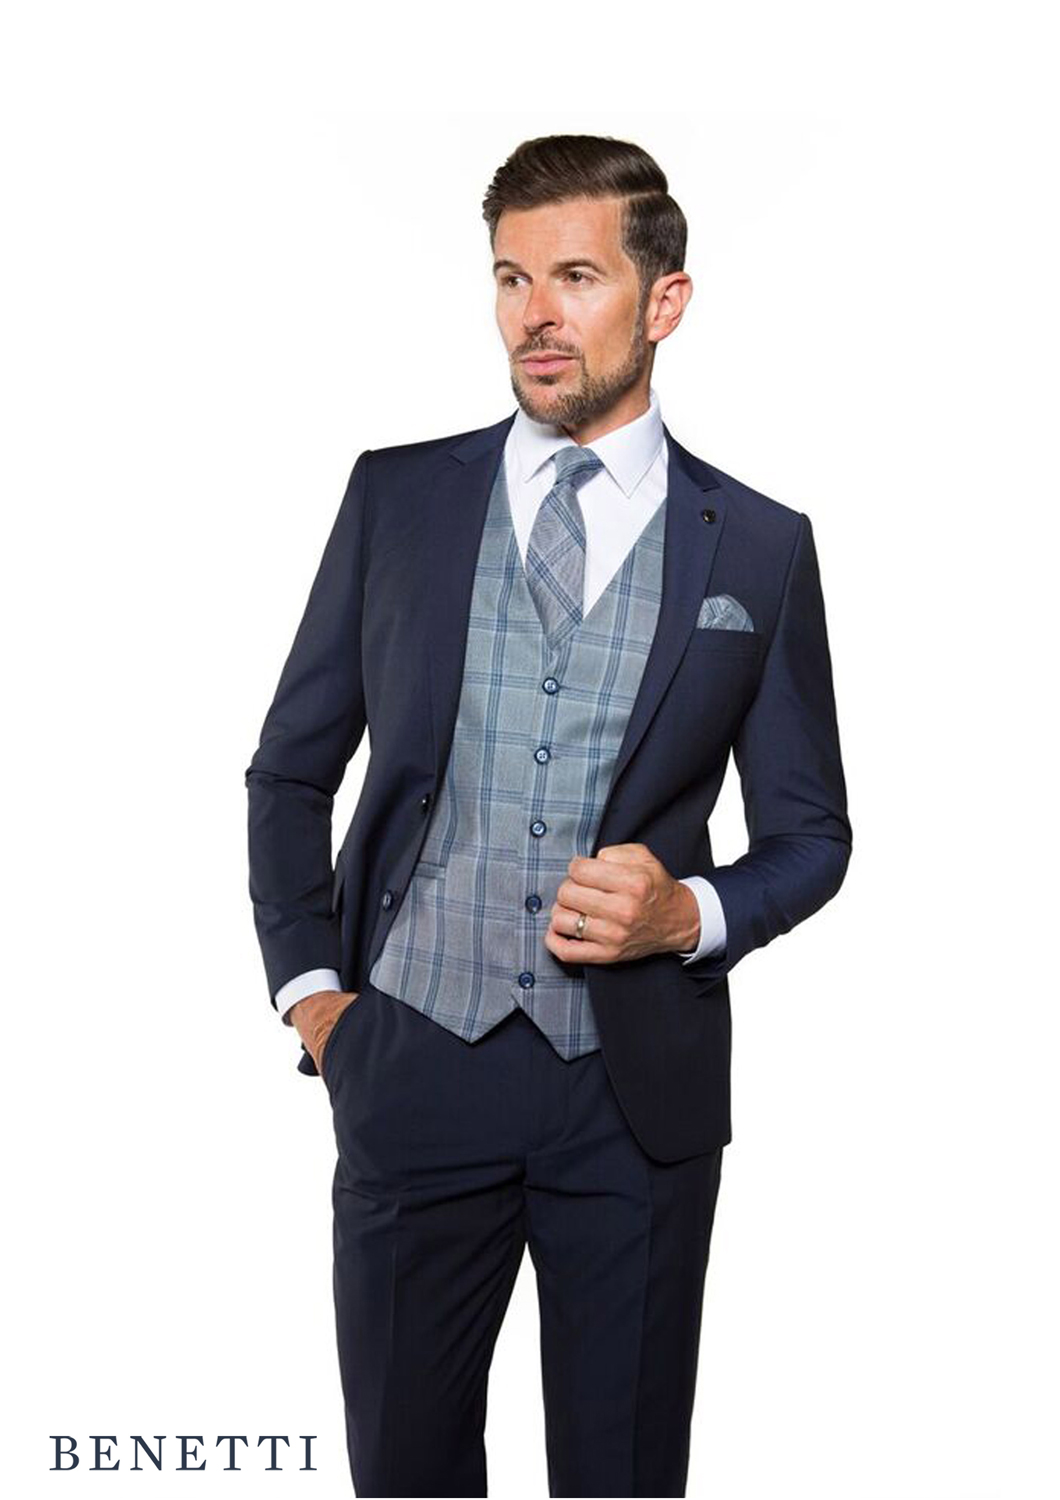 If you're unsure of the dress code then play it safe and match your trousers and jacket to your waistcoat. If you think there's room to have a bit of fun, then try pairing a bright or patterned waistcoat underneath your usual suit jacket and trousers. A classic collared shirt is best, but ties are optional.